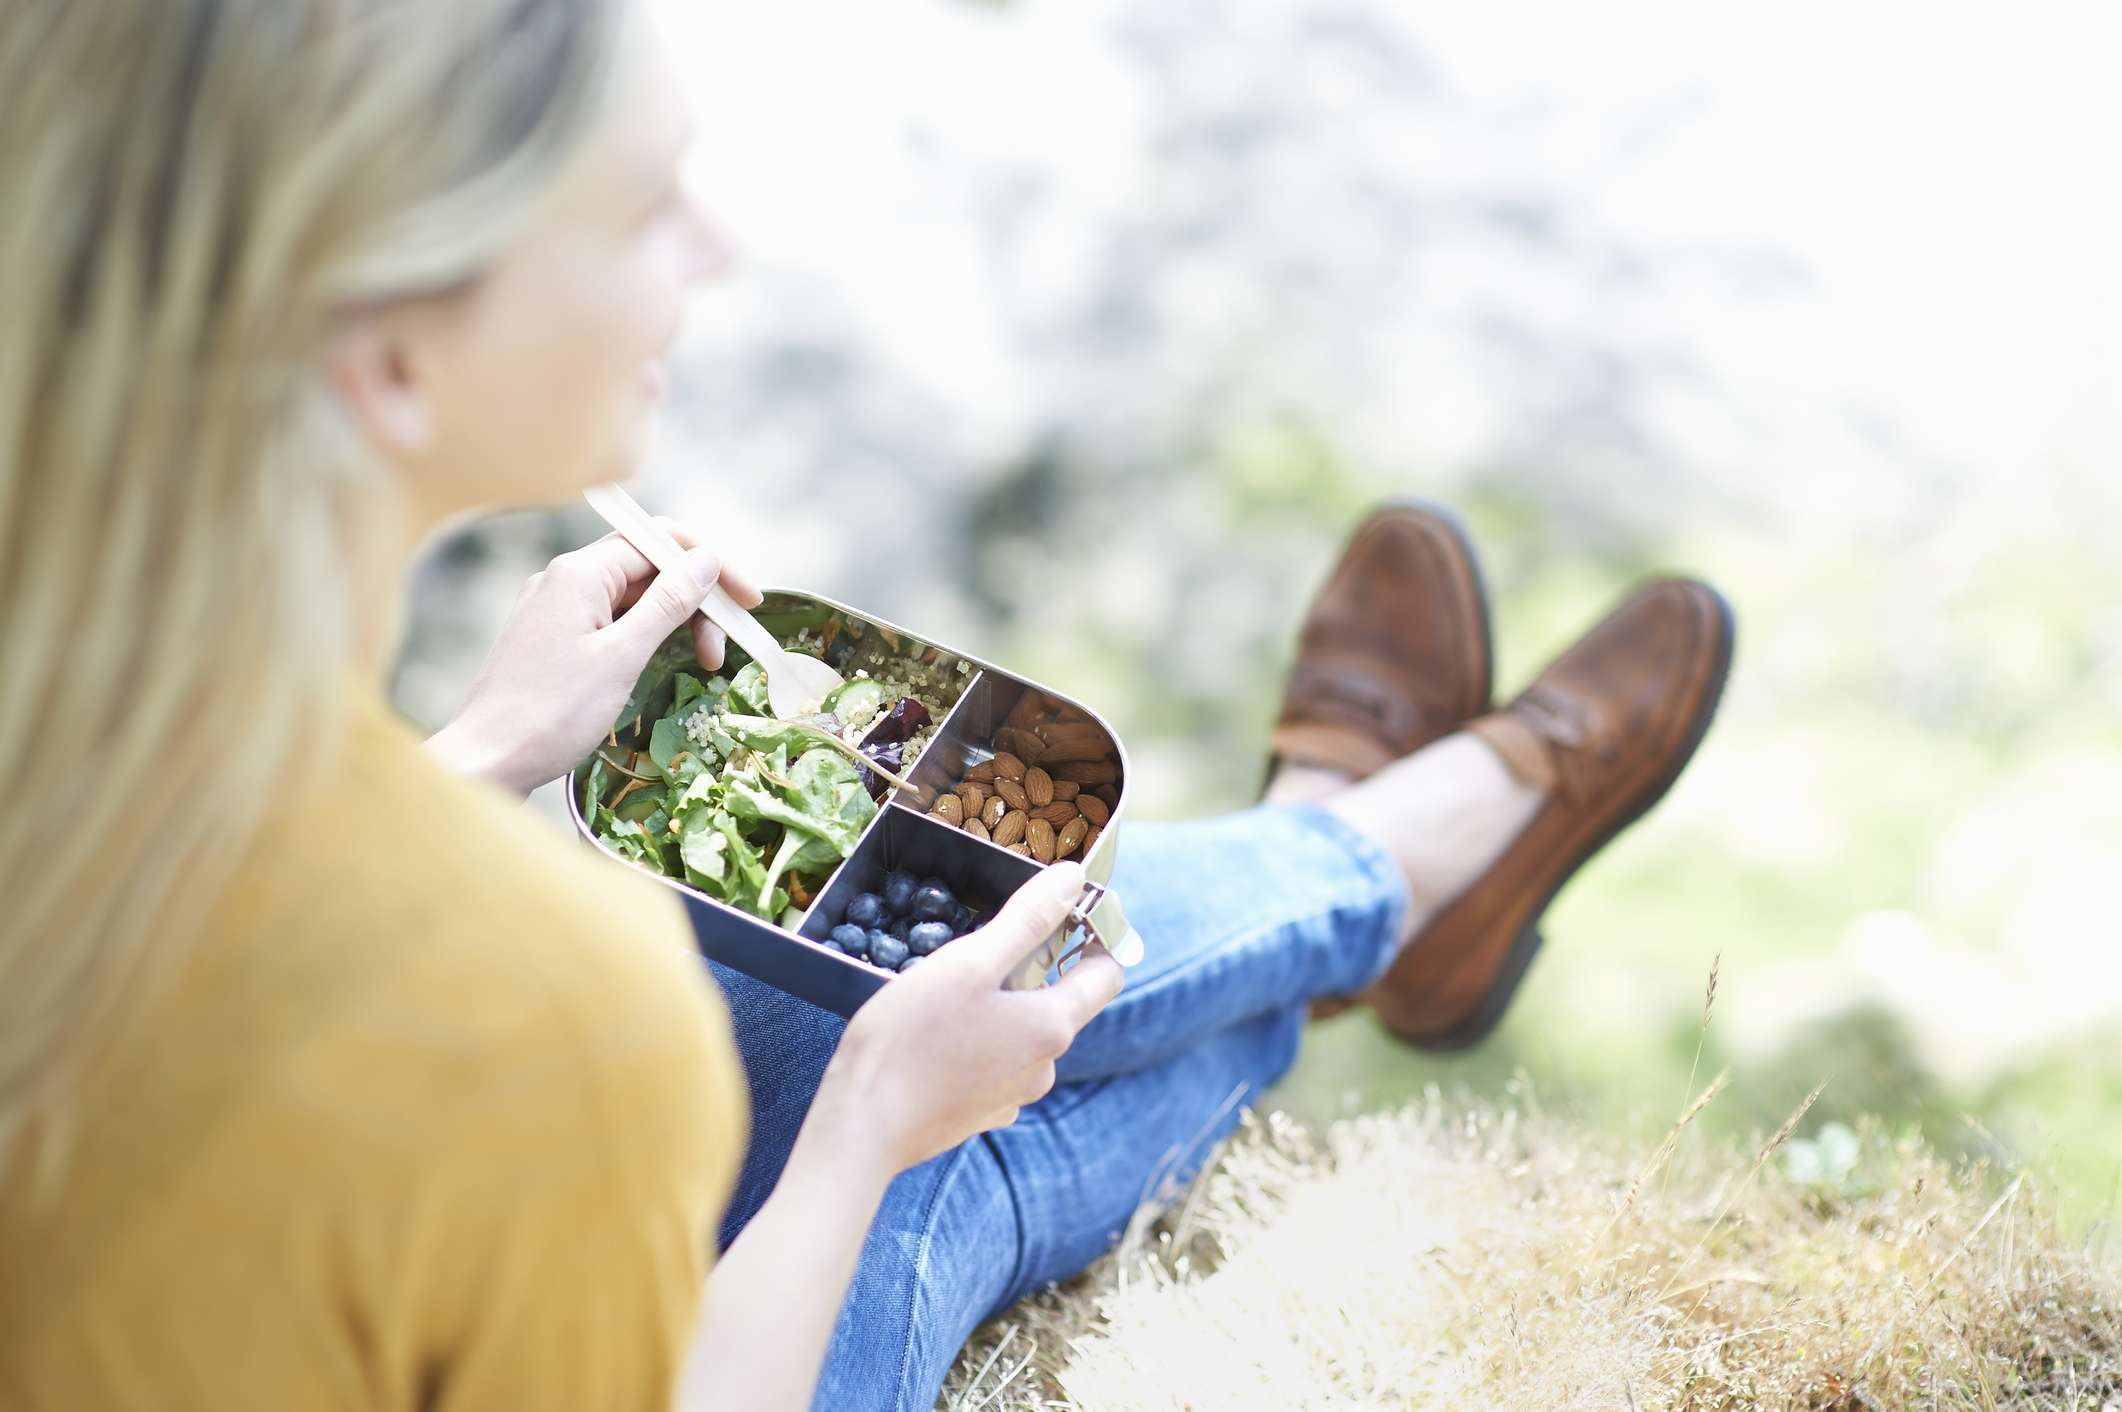 A white woman eats a vegan lunch from a metal container.